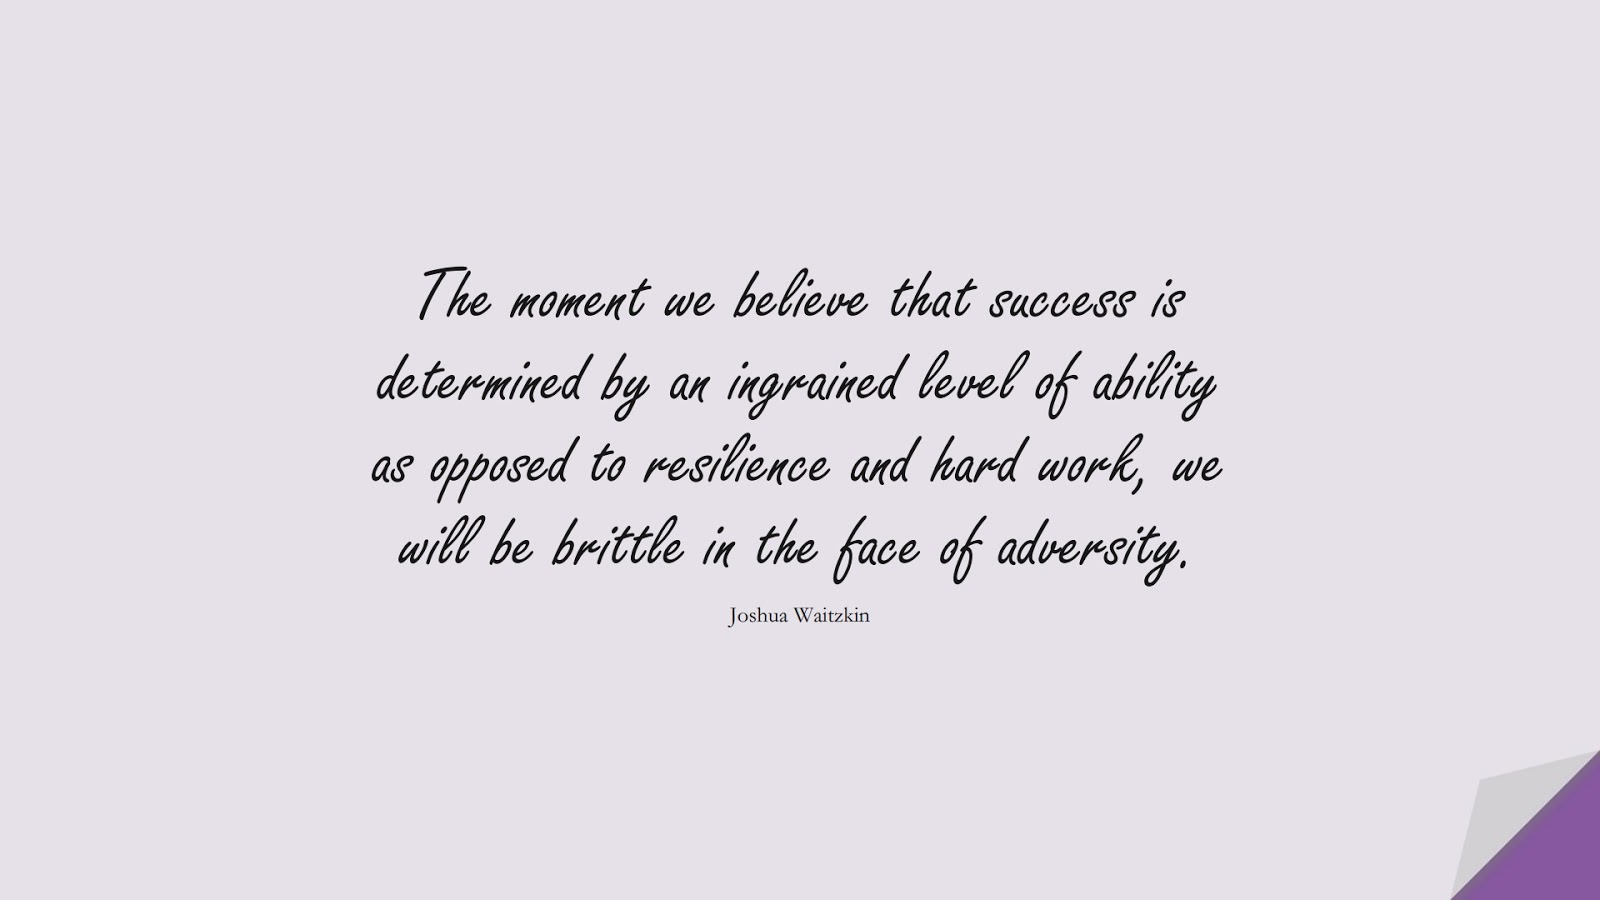 The moment we believe that success is determined by an ingrained level of ability as opposed to resilience and hard work, we will be brittle in the face of adversity. (Joshua Waitzkin);  #SuccessQuotes